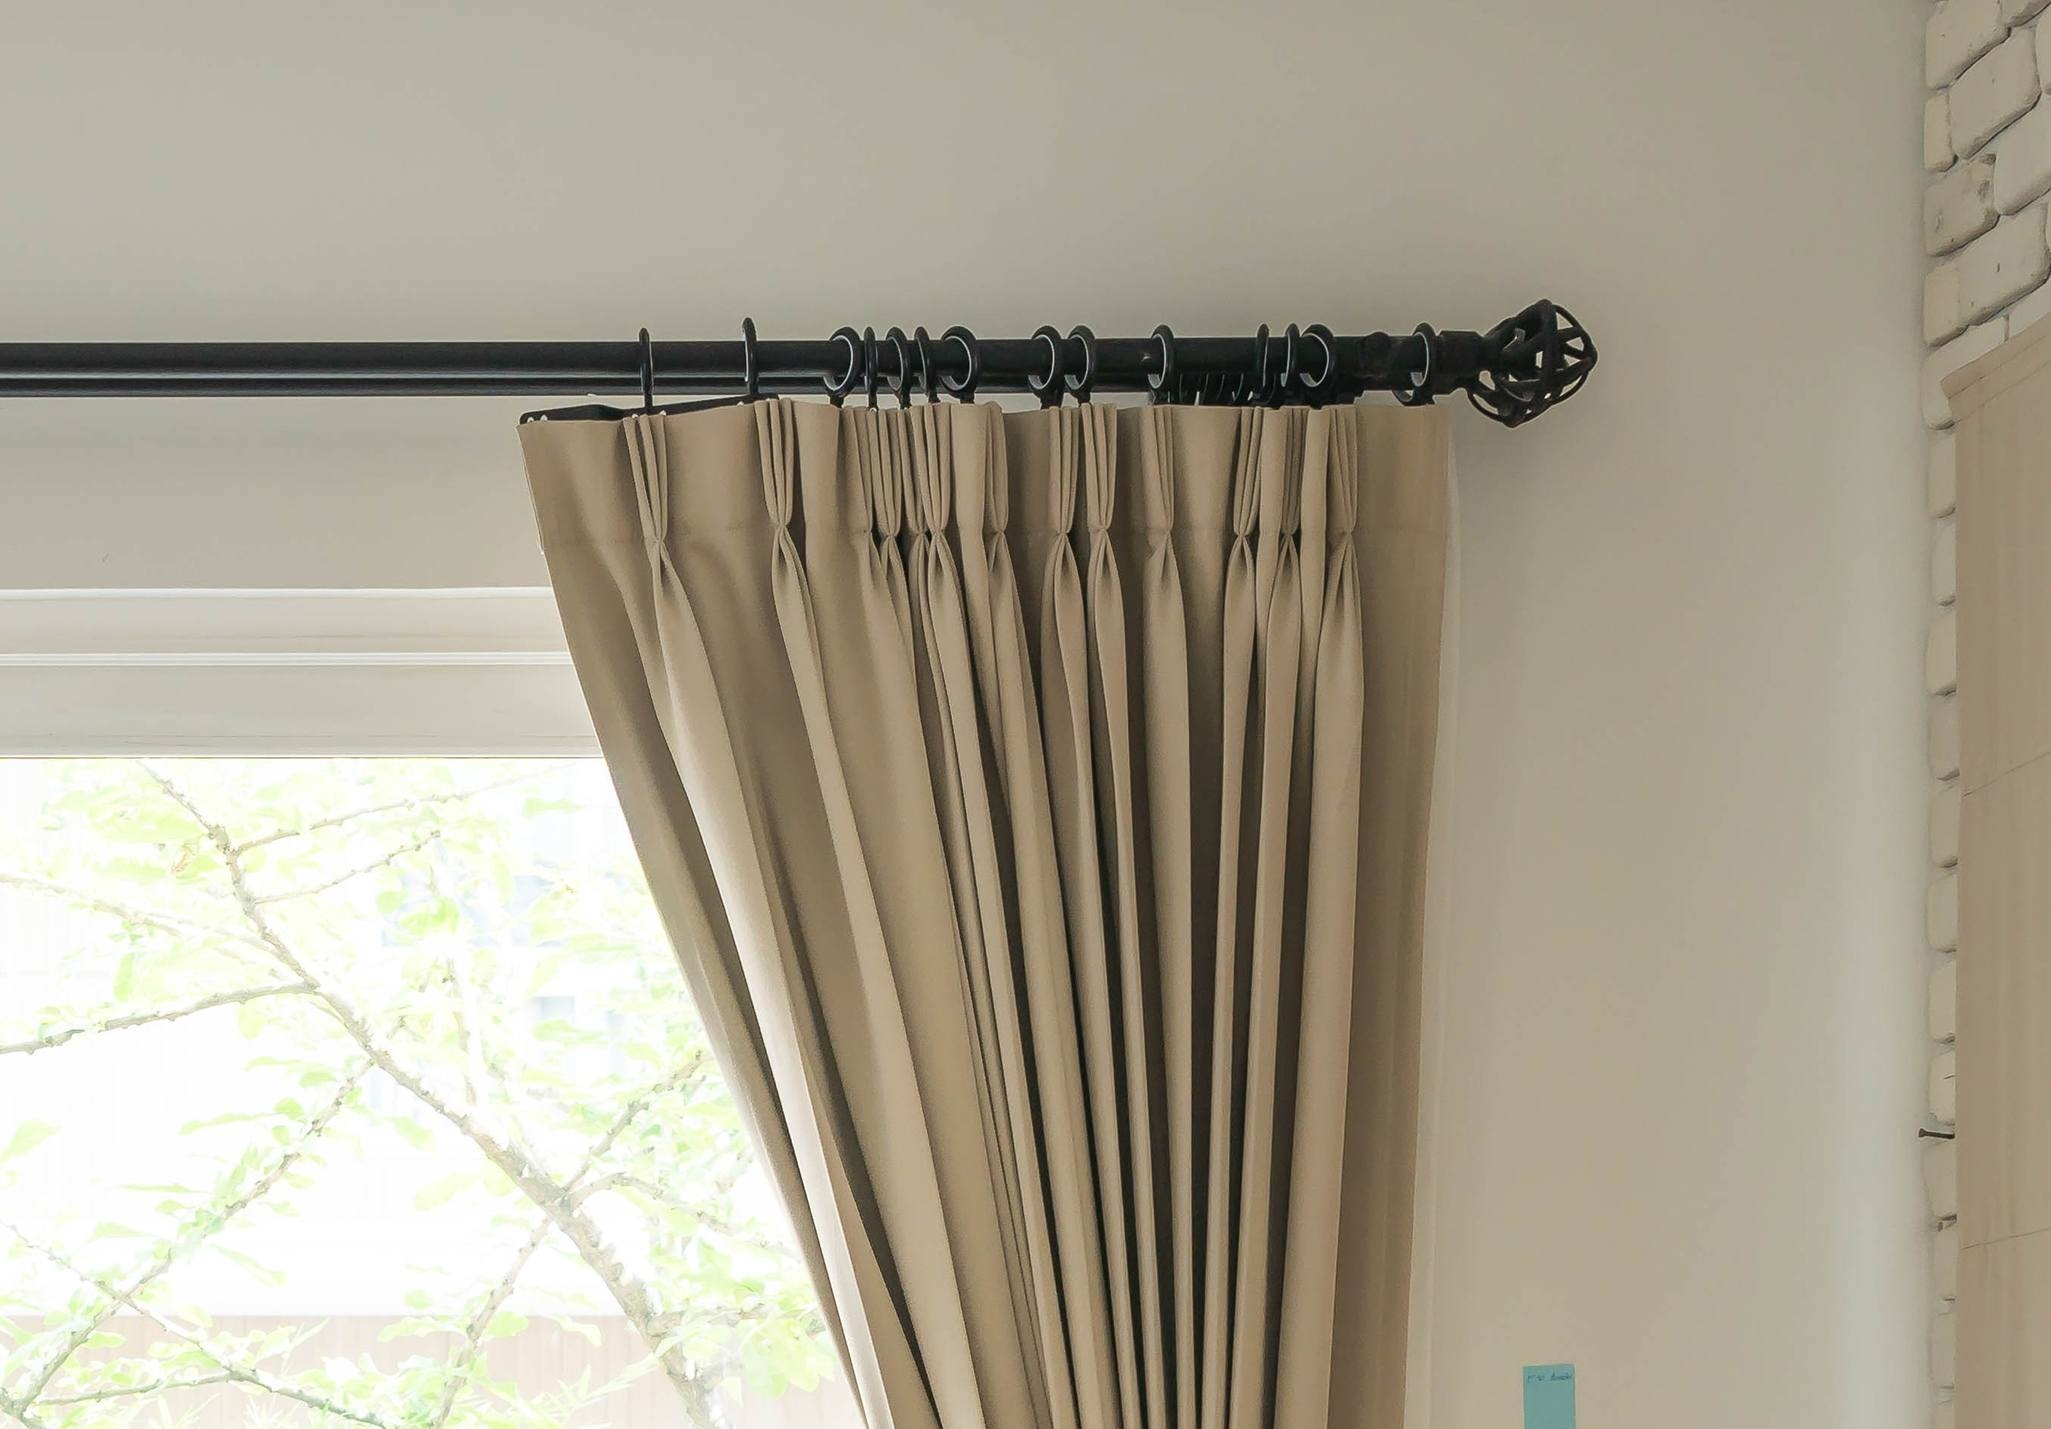 I Want To Know Everything About Wooden Curtain Poles Inside Wooden Curtain Poles (View 5 of 25)